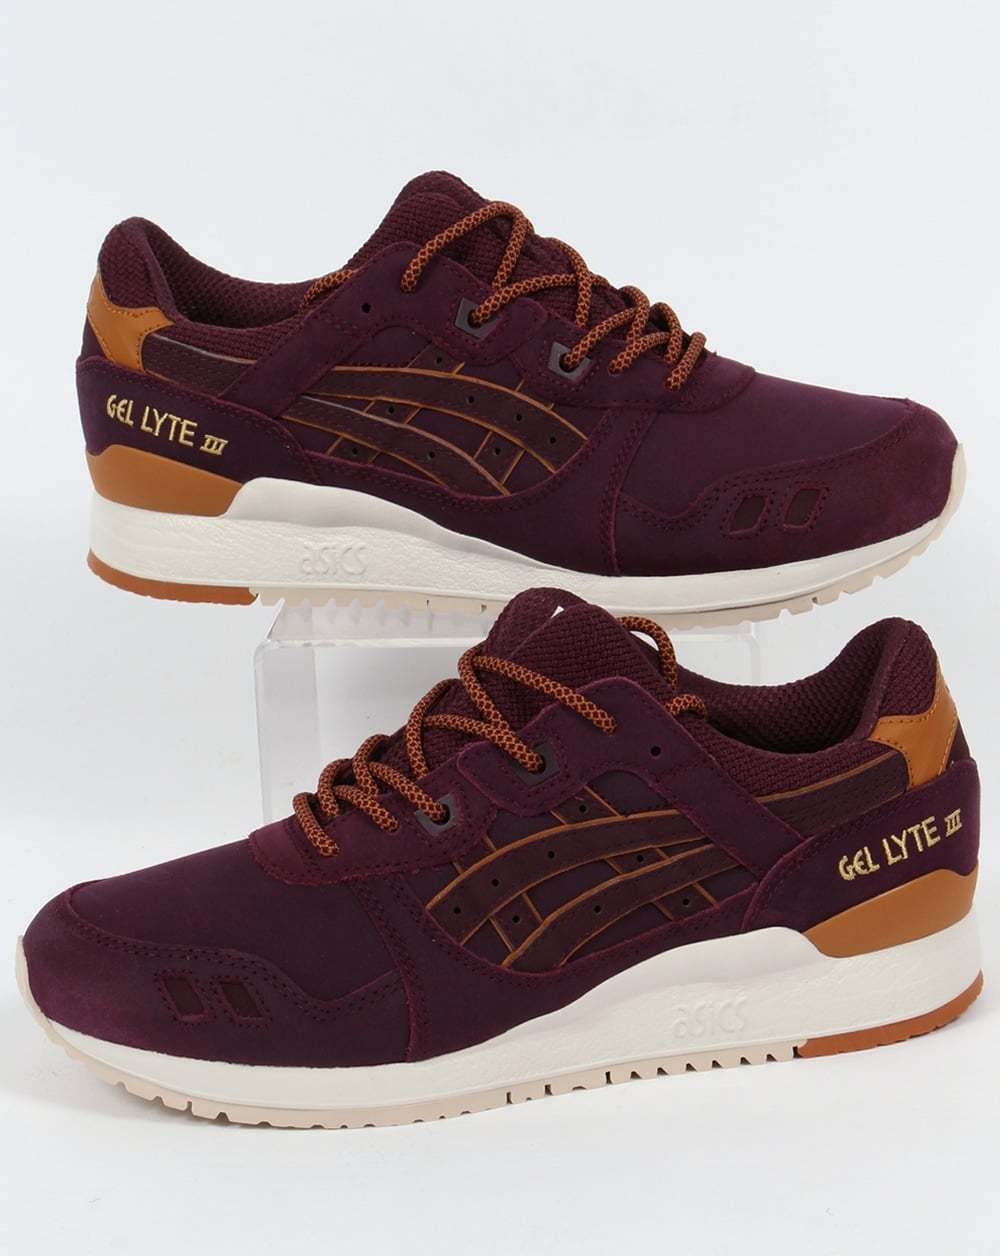 contrabando Gracias hacer clic  Asics Gel Lyte III Trainers Rioja Red,3,shoes,runners,sneakers